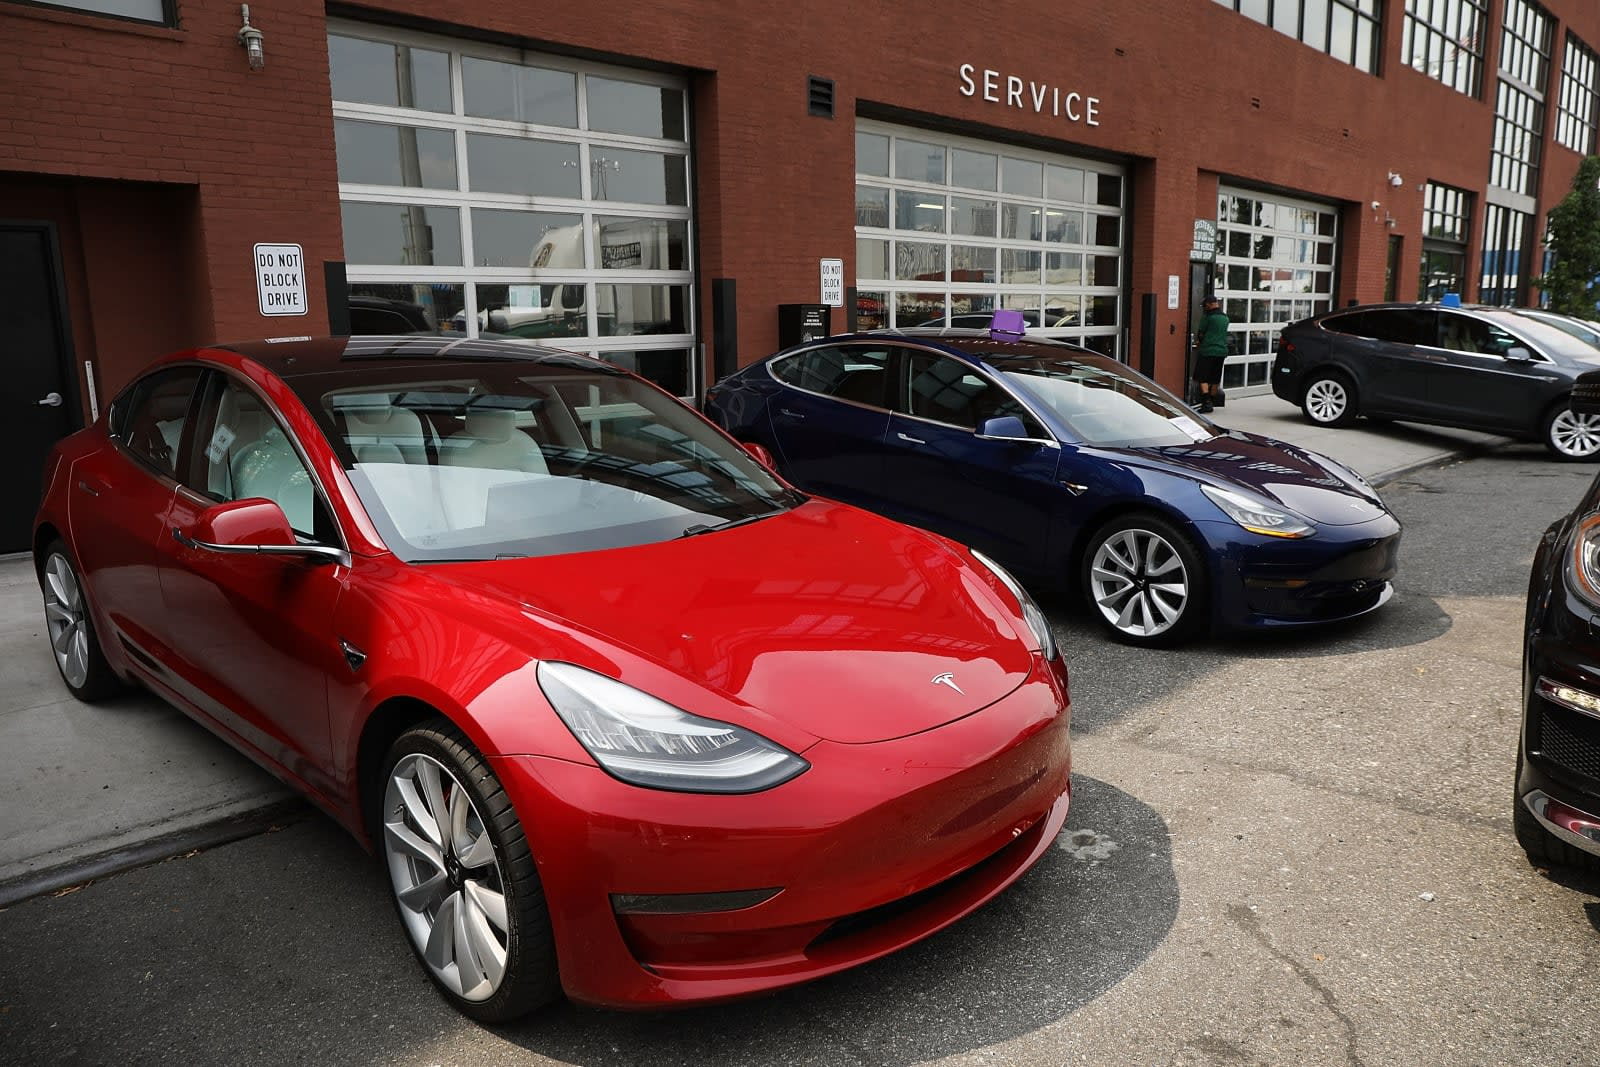 Now Tesla owners can attach a picture to their repair request